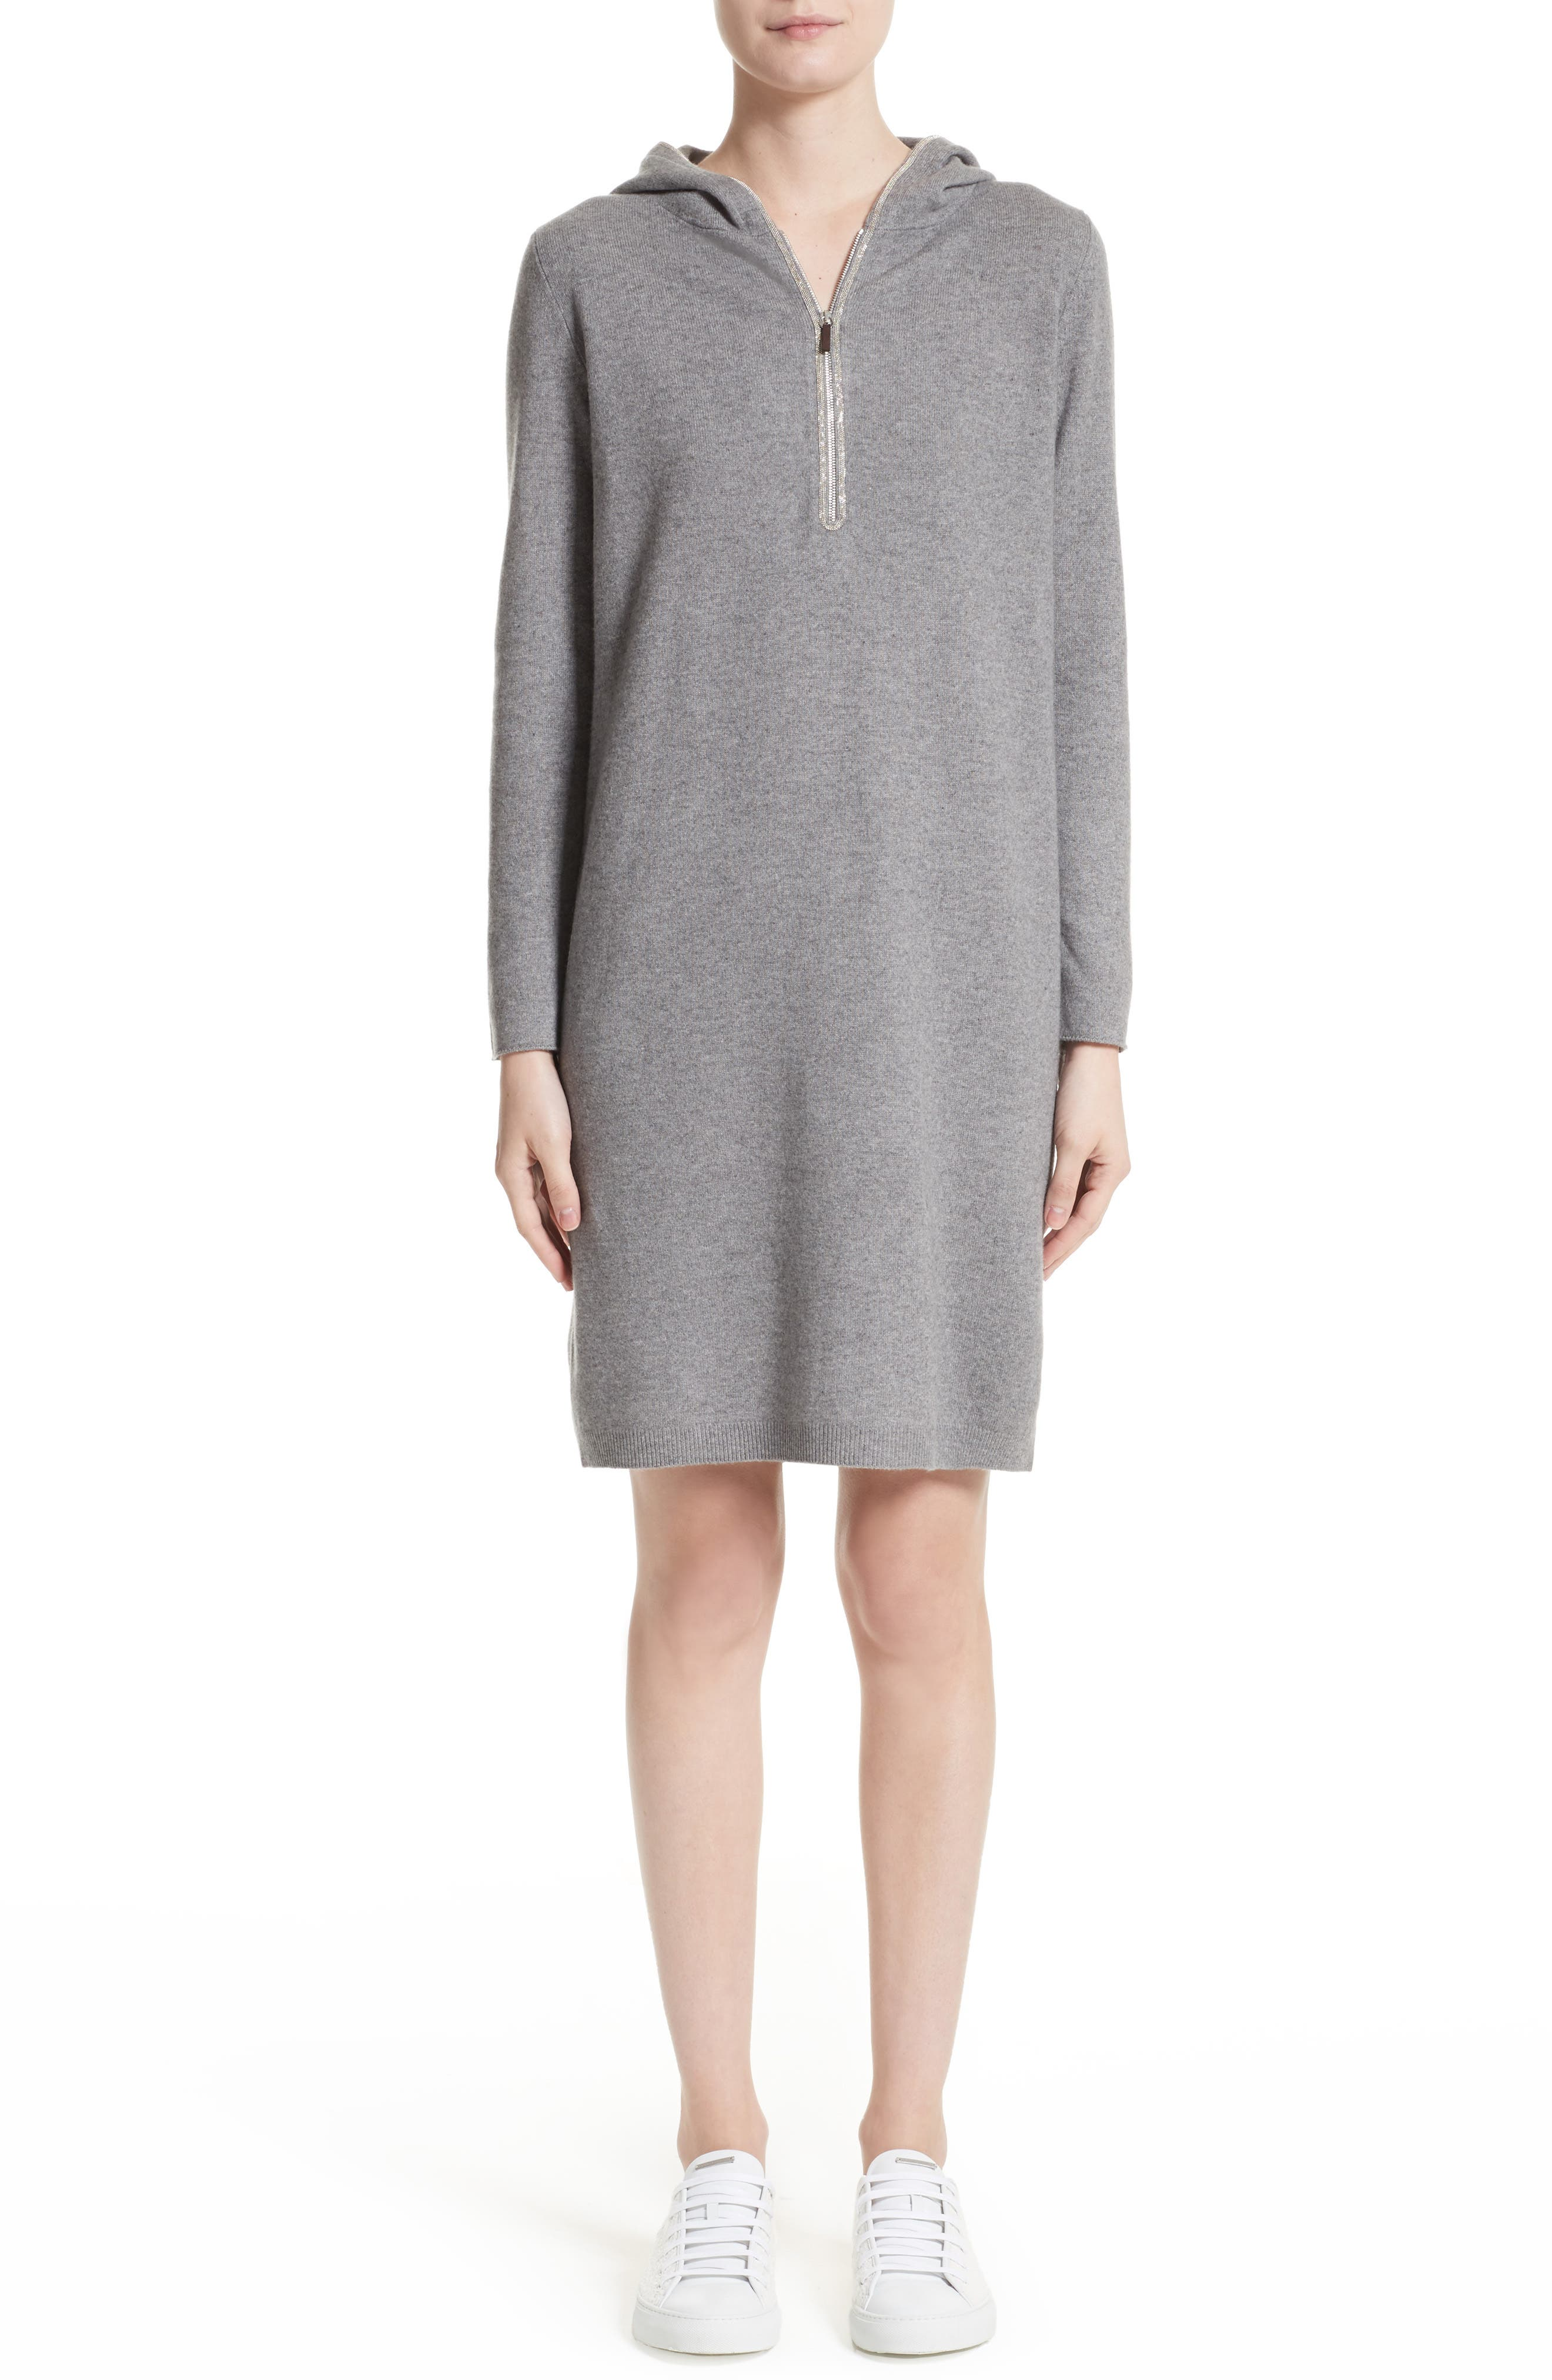 Wool, Silk & Cashmere Hooded Dress,                         Main,                         color, Grey